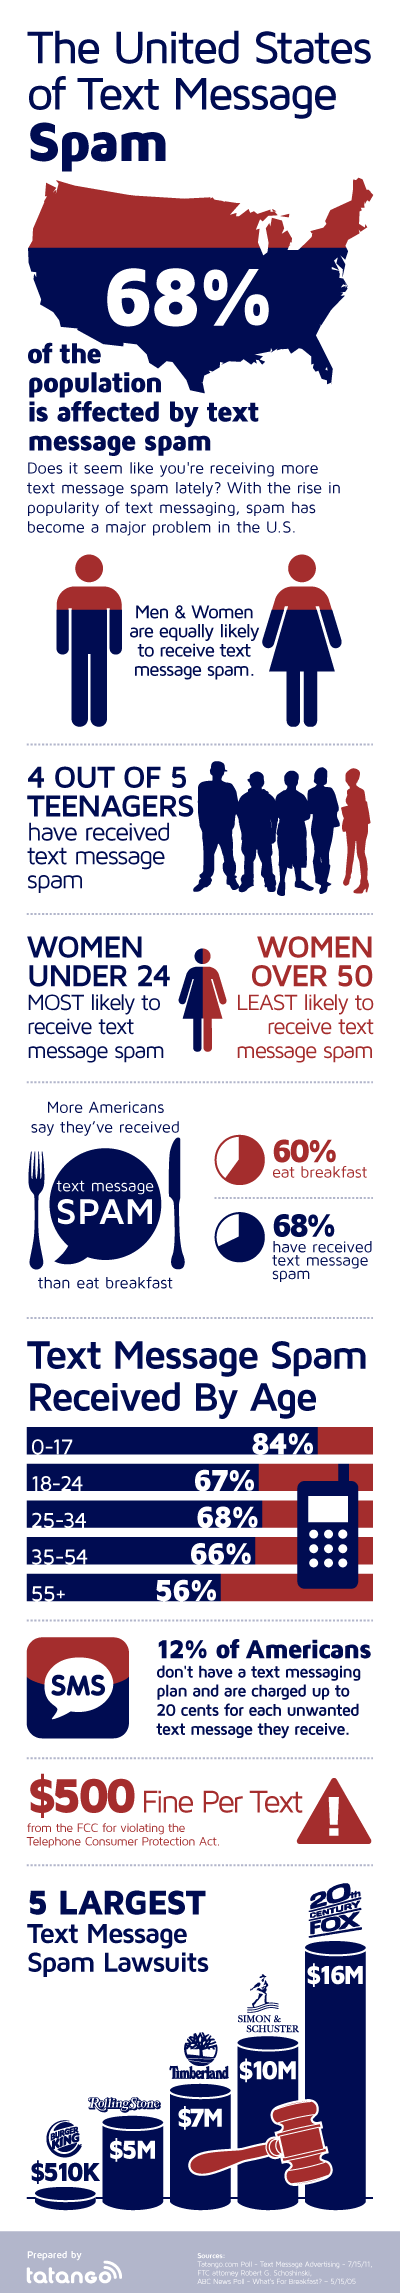 Text Message Spam Infographic resized 600